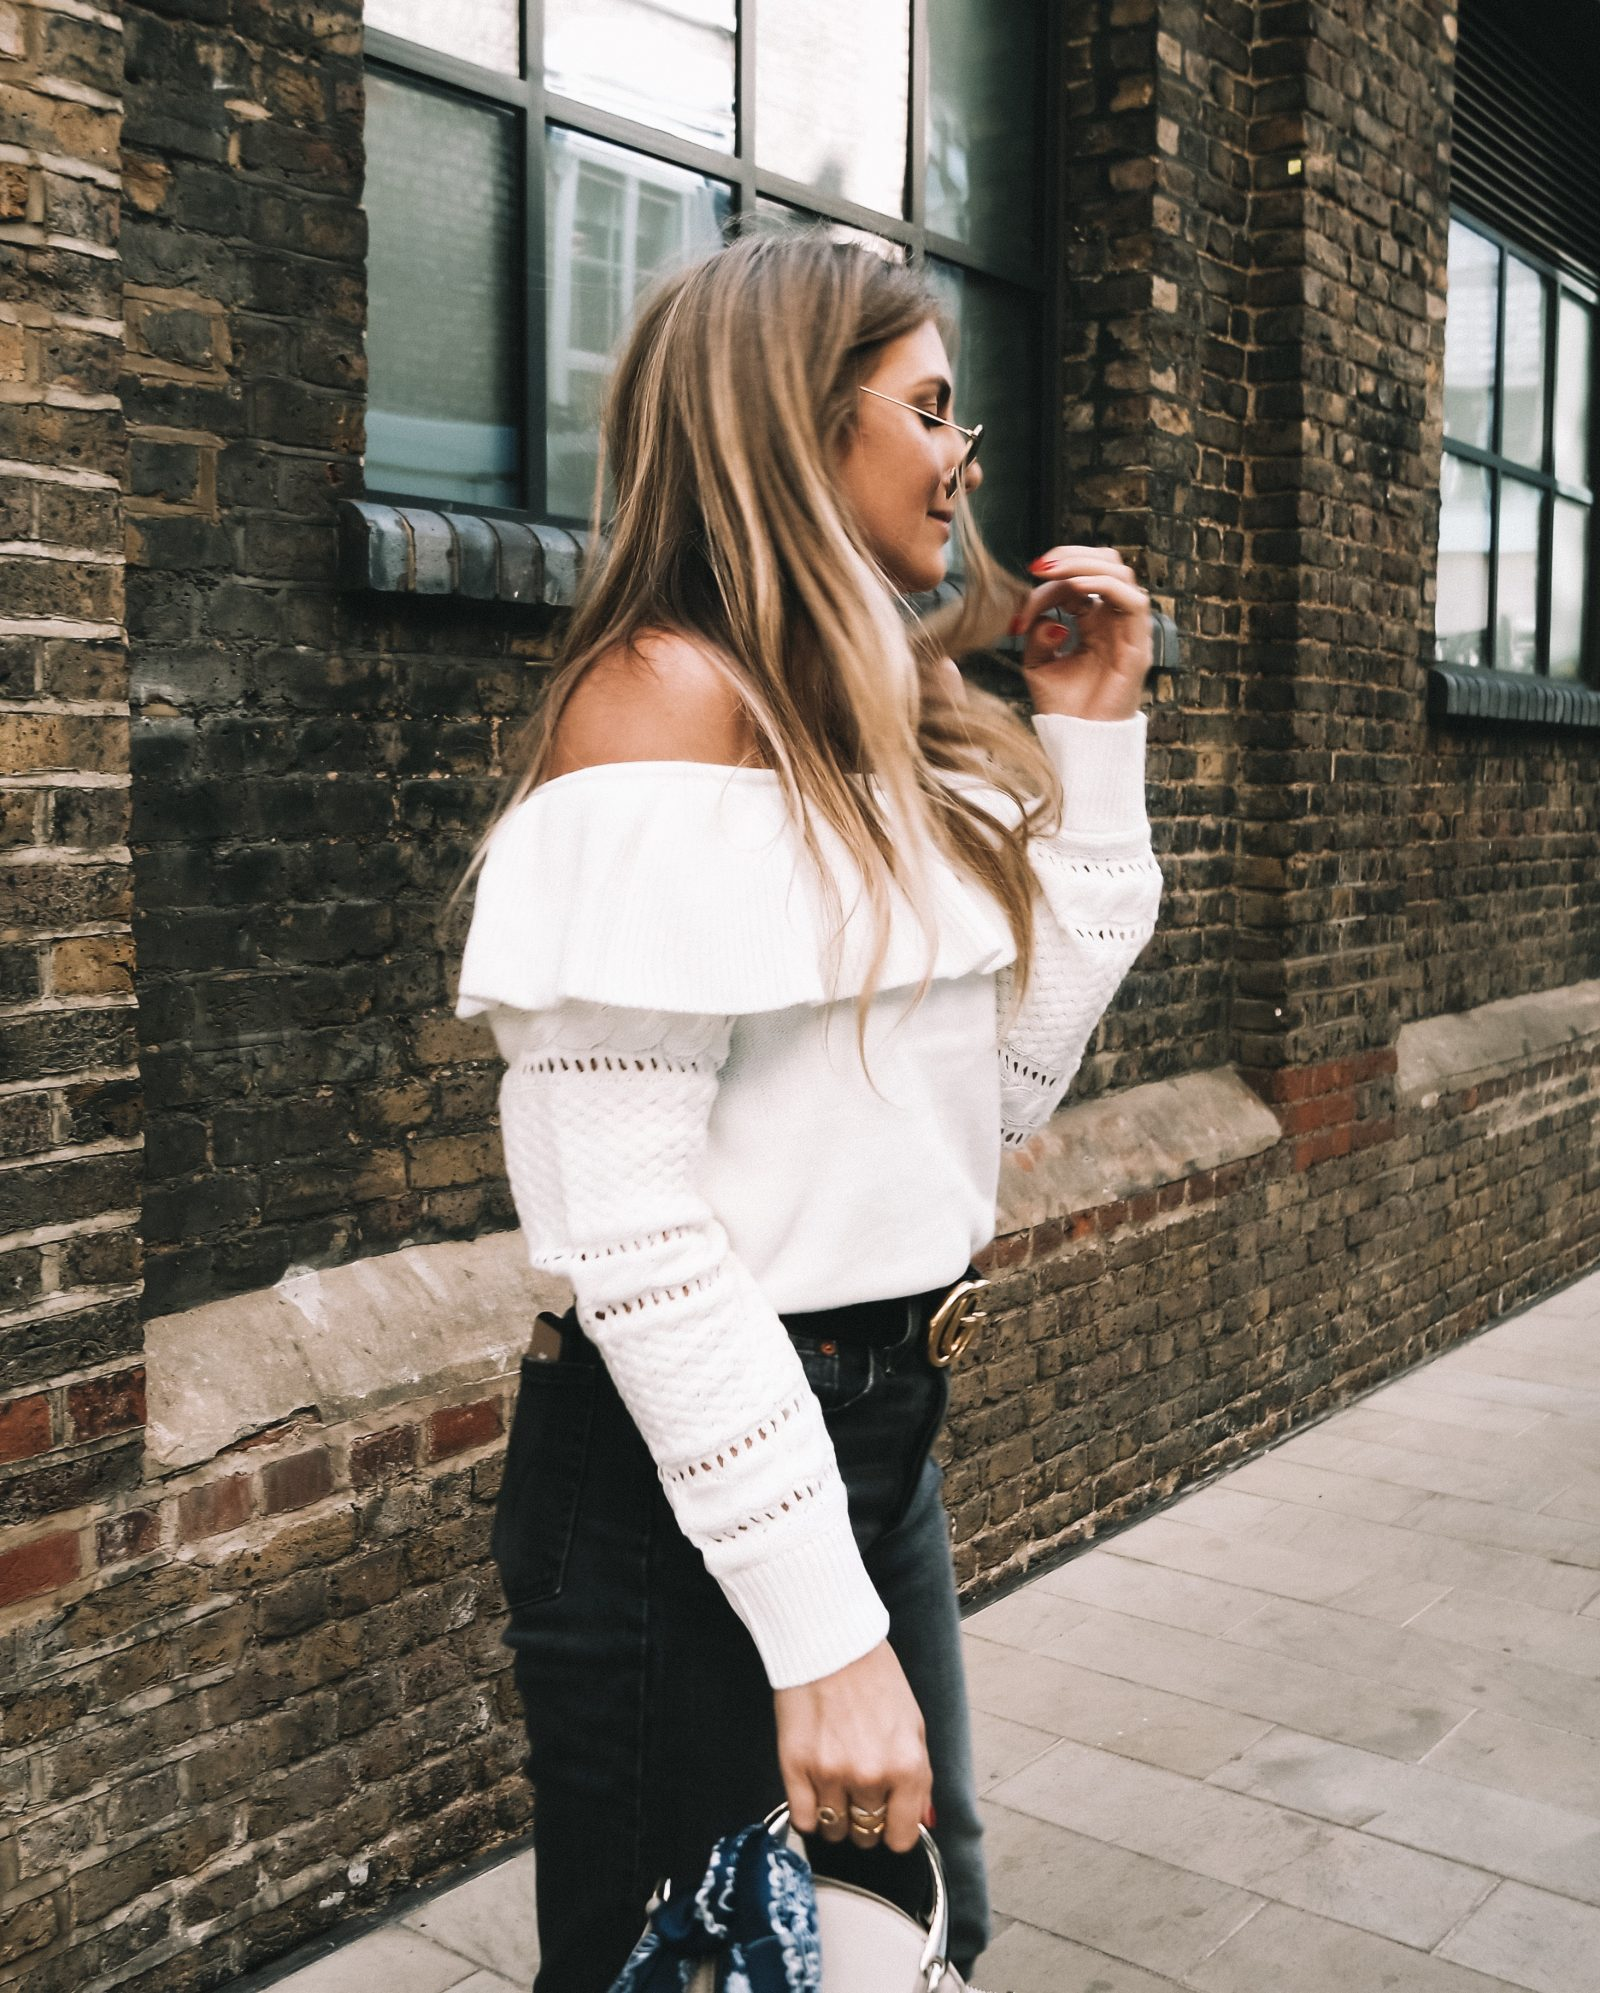 Moving To London - Lulus Outfit - Autumn Style - Sinead Crowe